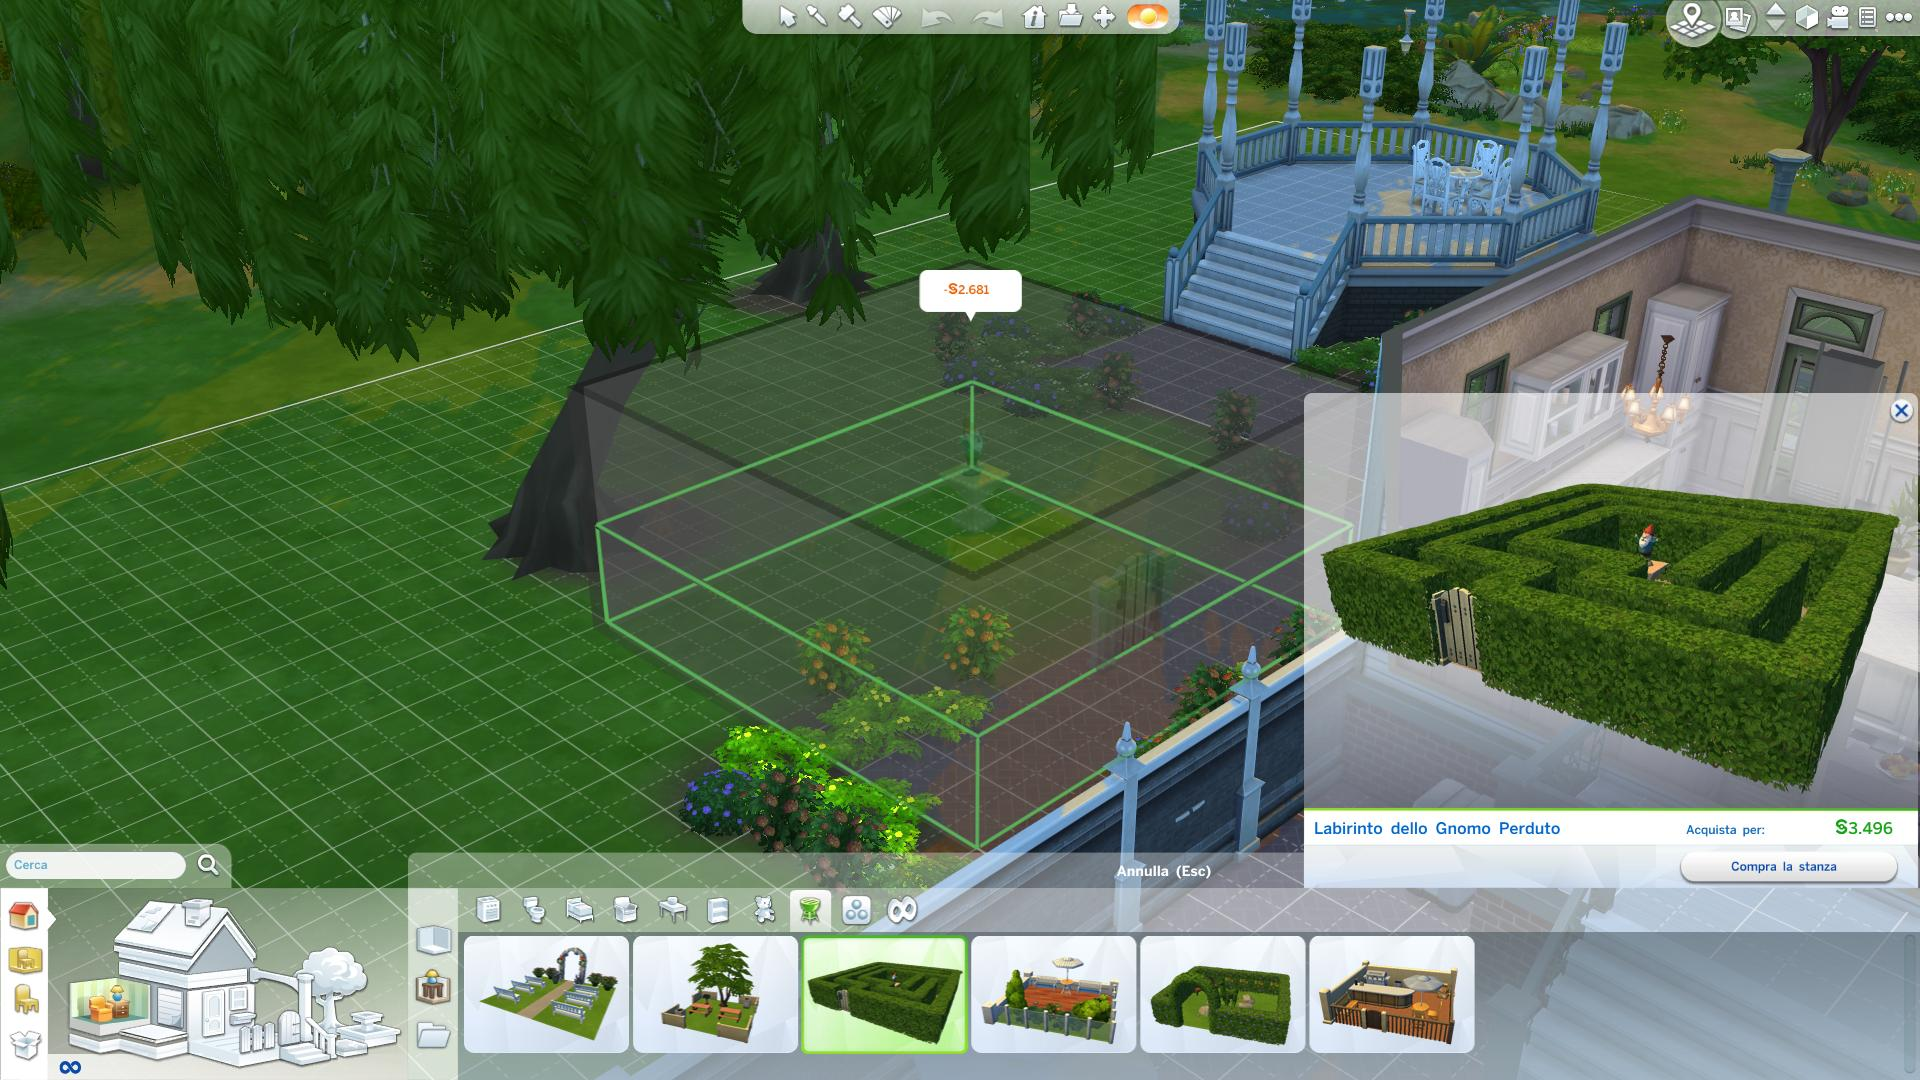 The sims 4 recensione pc for Case the sims 3 arredate